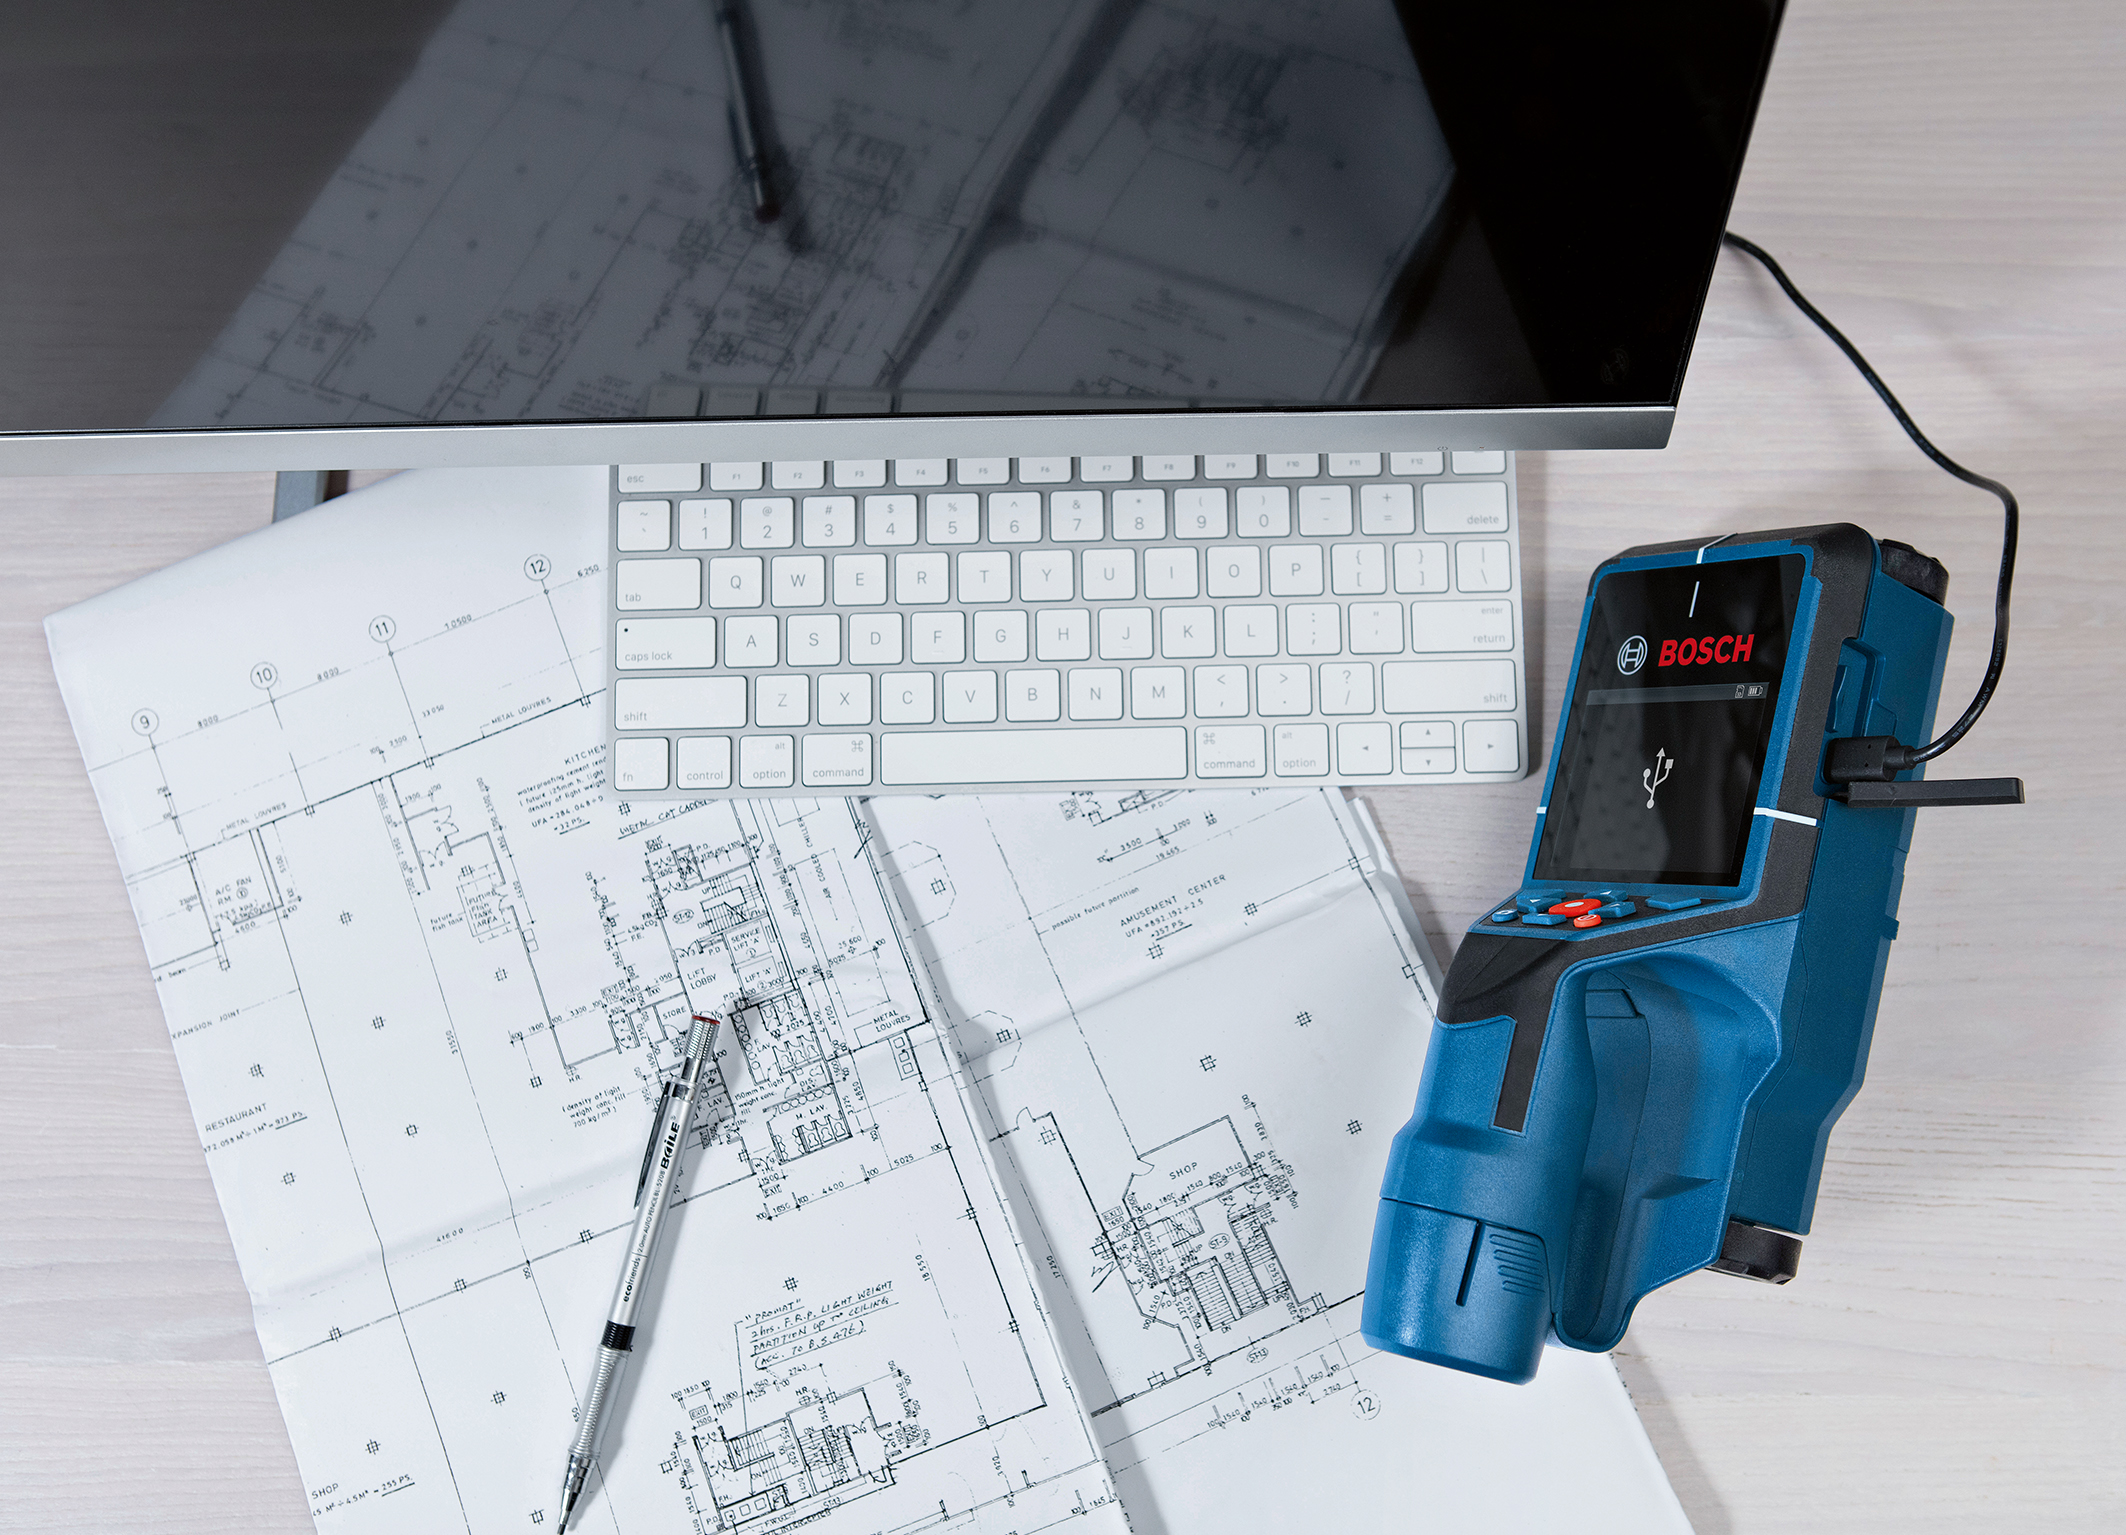 Documentation via a screenshot and data transmission to a PC: The Bosch D-tect 200 C Professional for pros